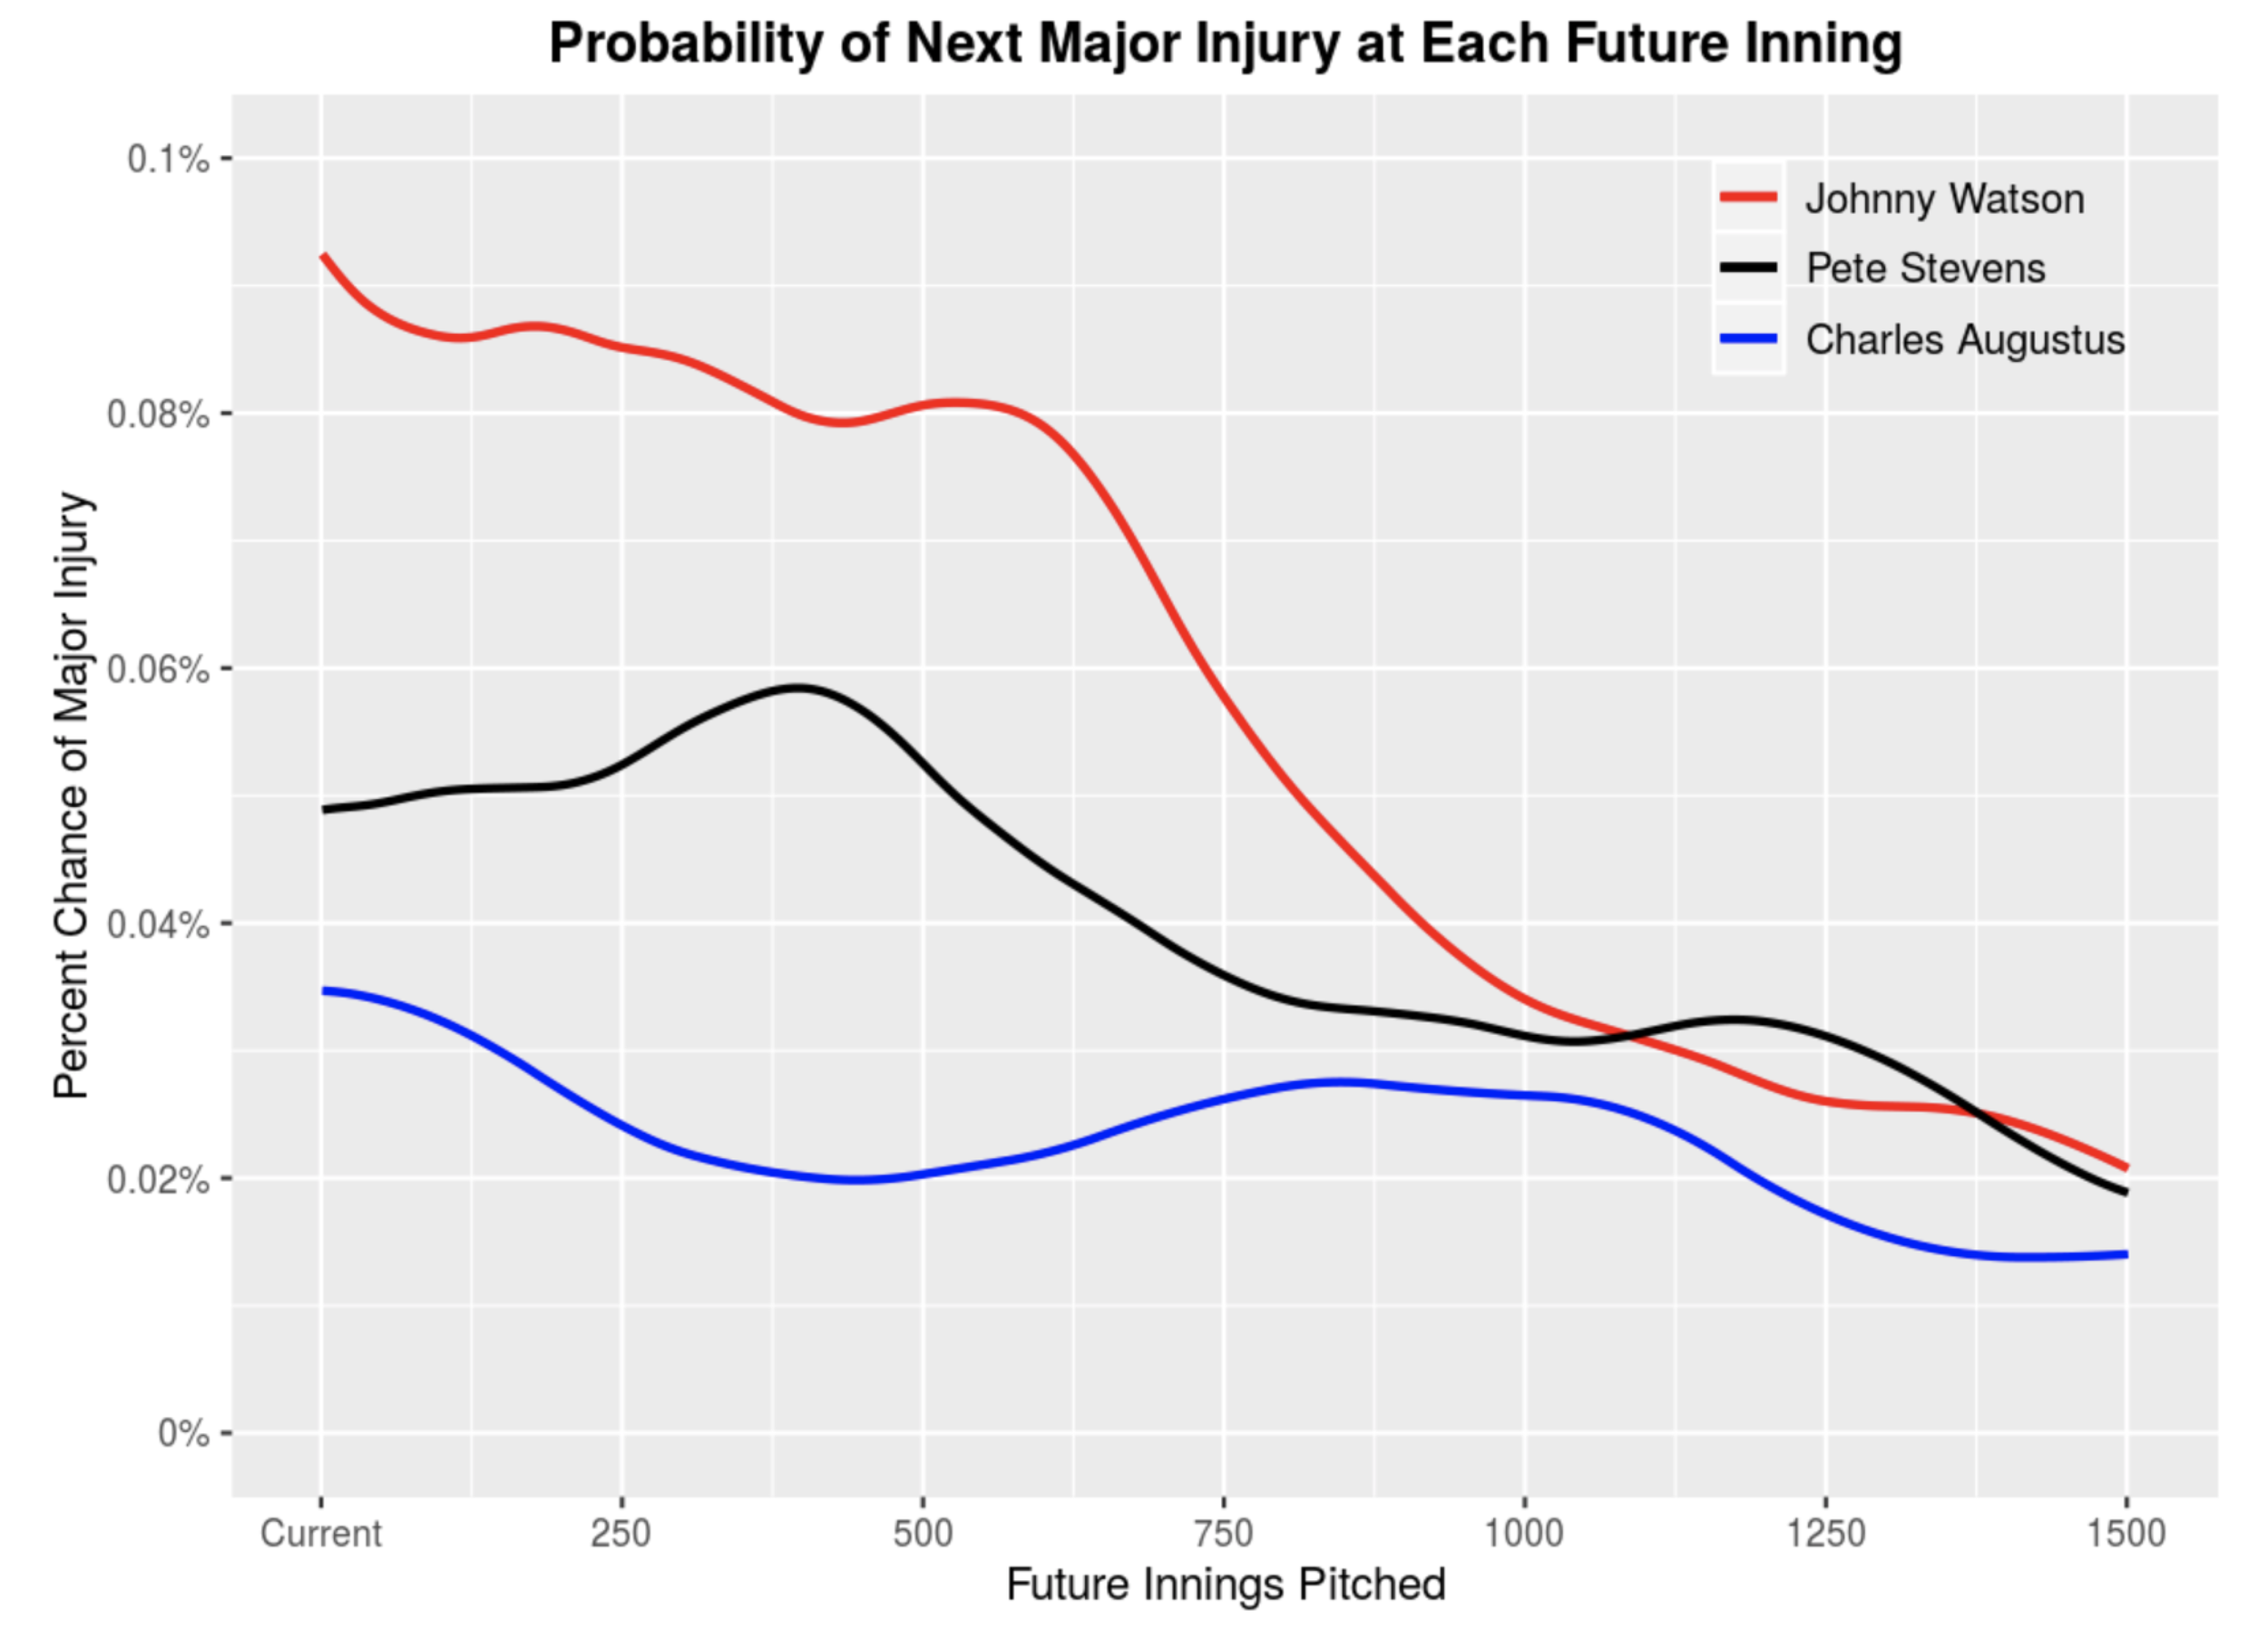 Comparison Between Pitchers at Future Inning - When comparing up to three pitchers, a graph will automatically populate the statistical probabilities for each pitcher. This plot compares the major injury risk of three pitchers at each of their future innings pitched.